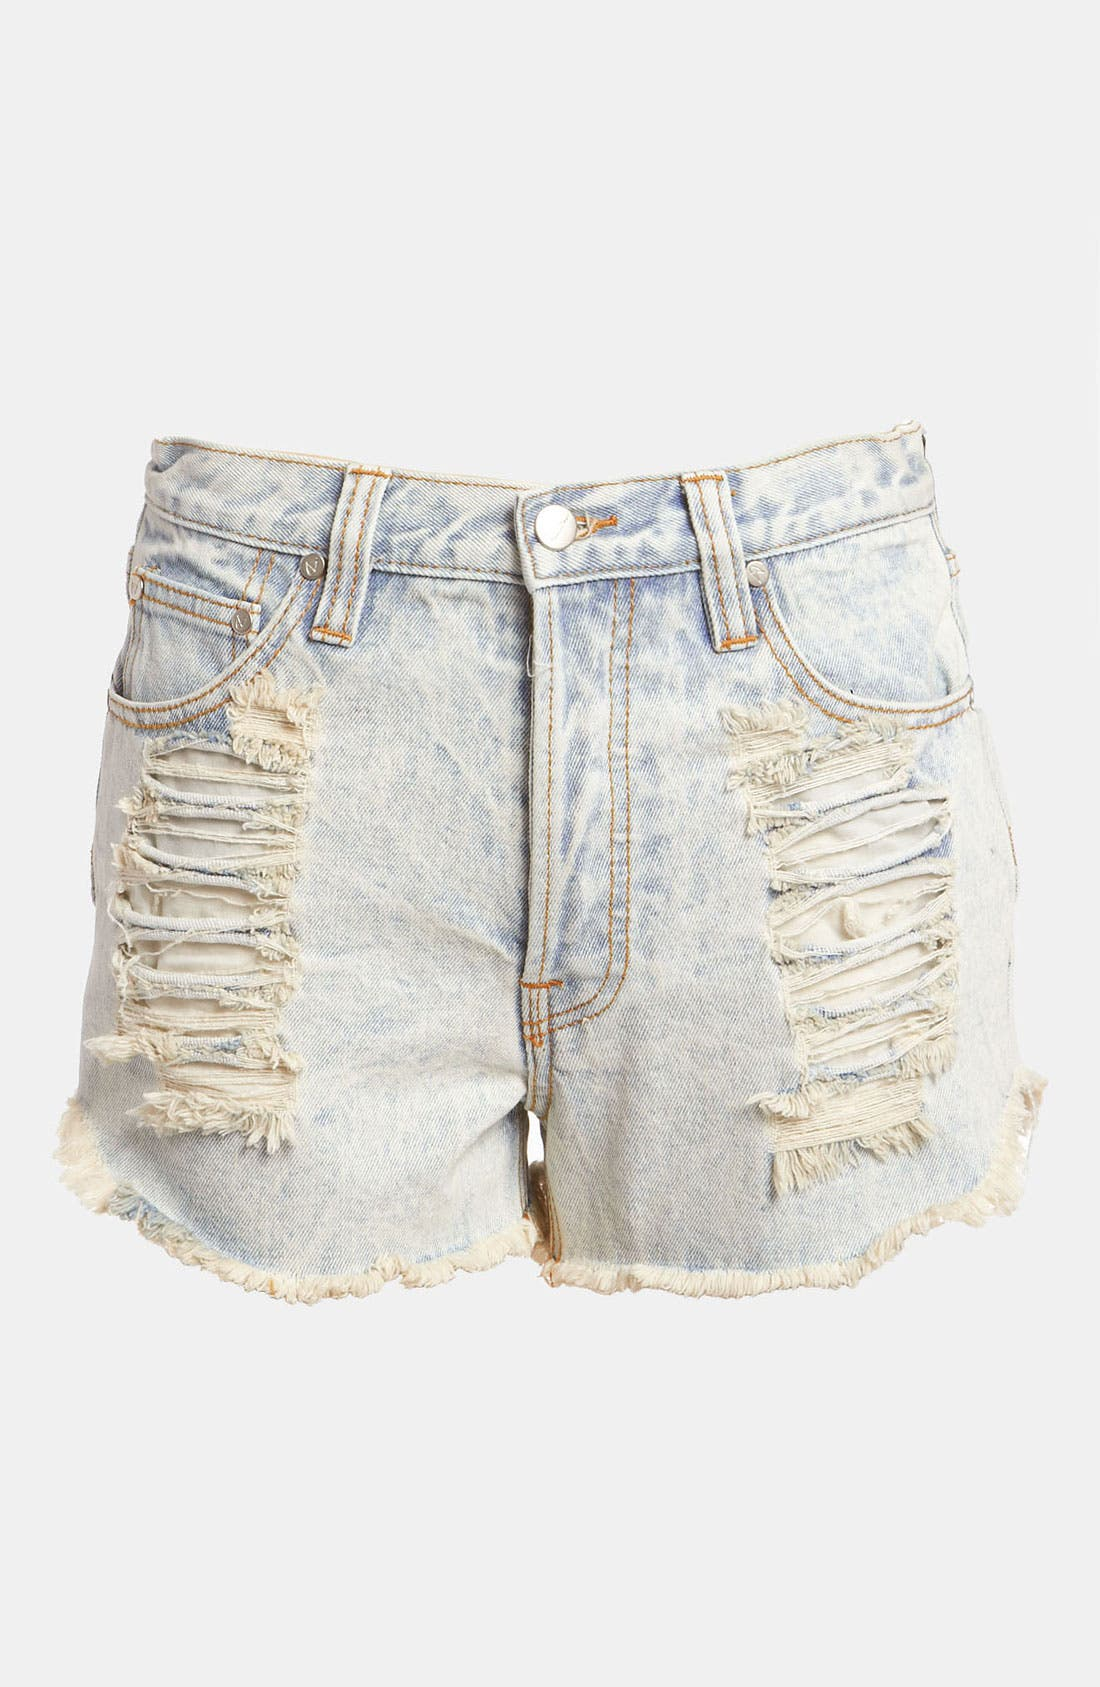 Alternate Image 1 Selected - MINKPINK 'Slasher Flick' Acid Wash Shorts